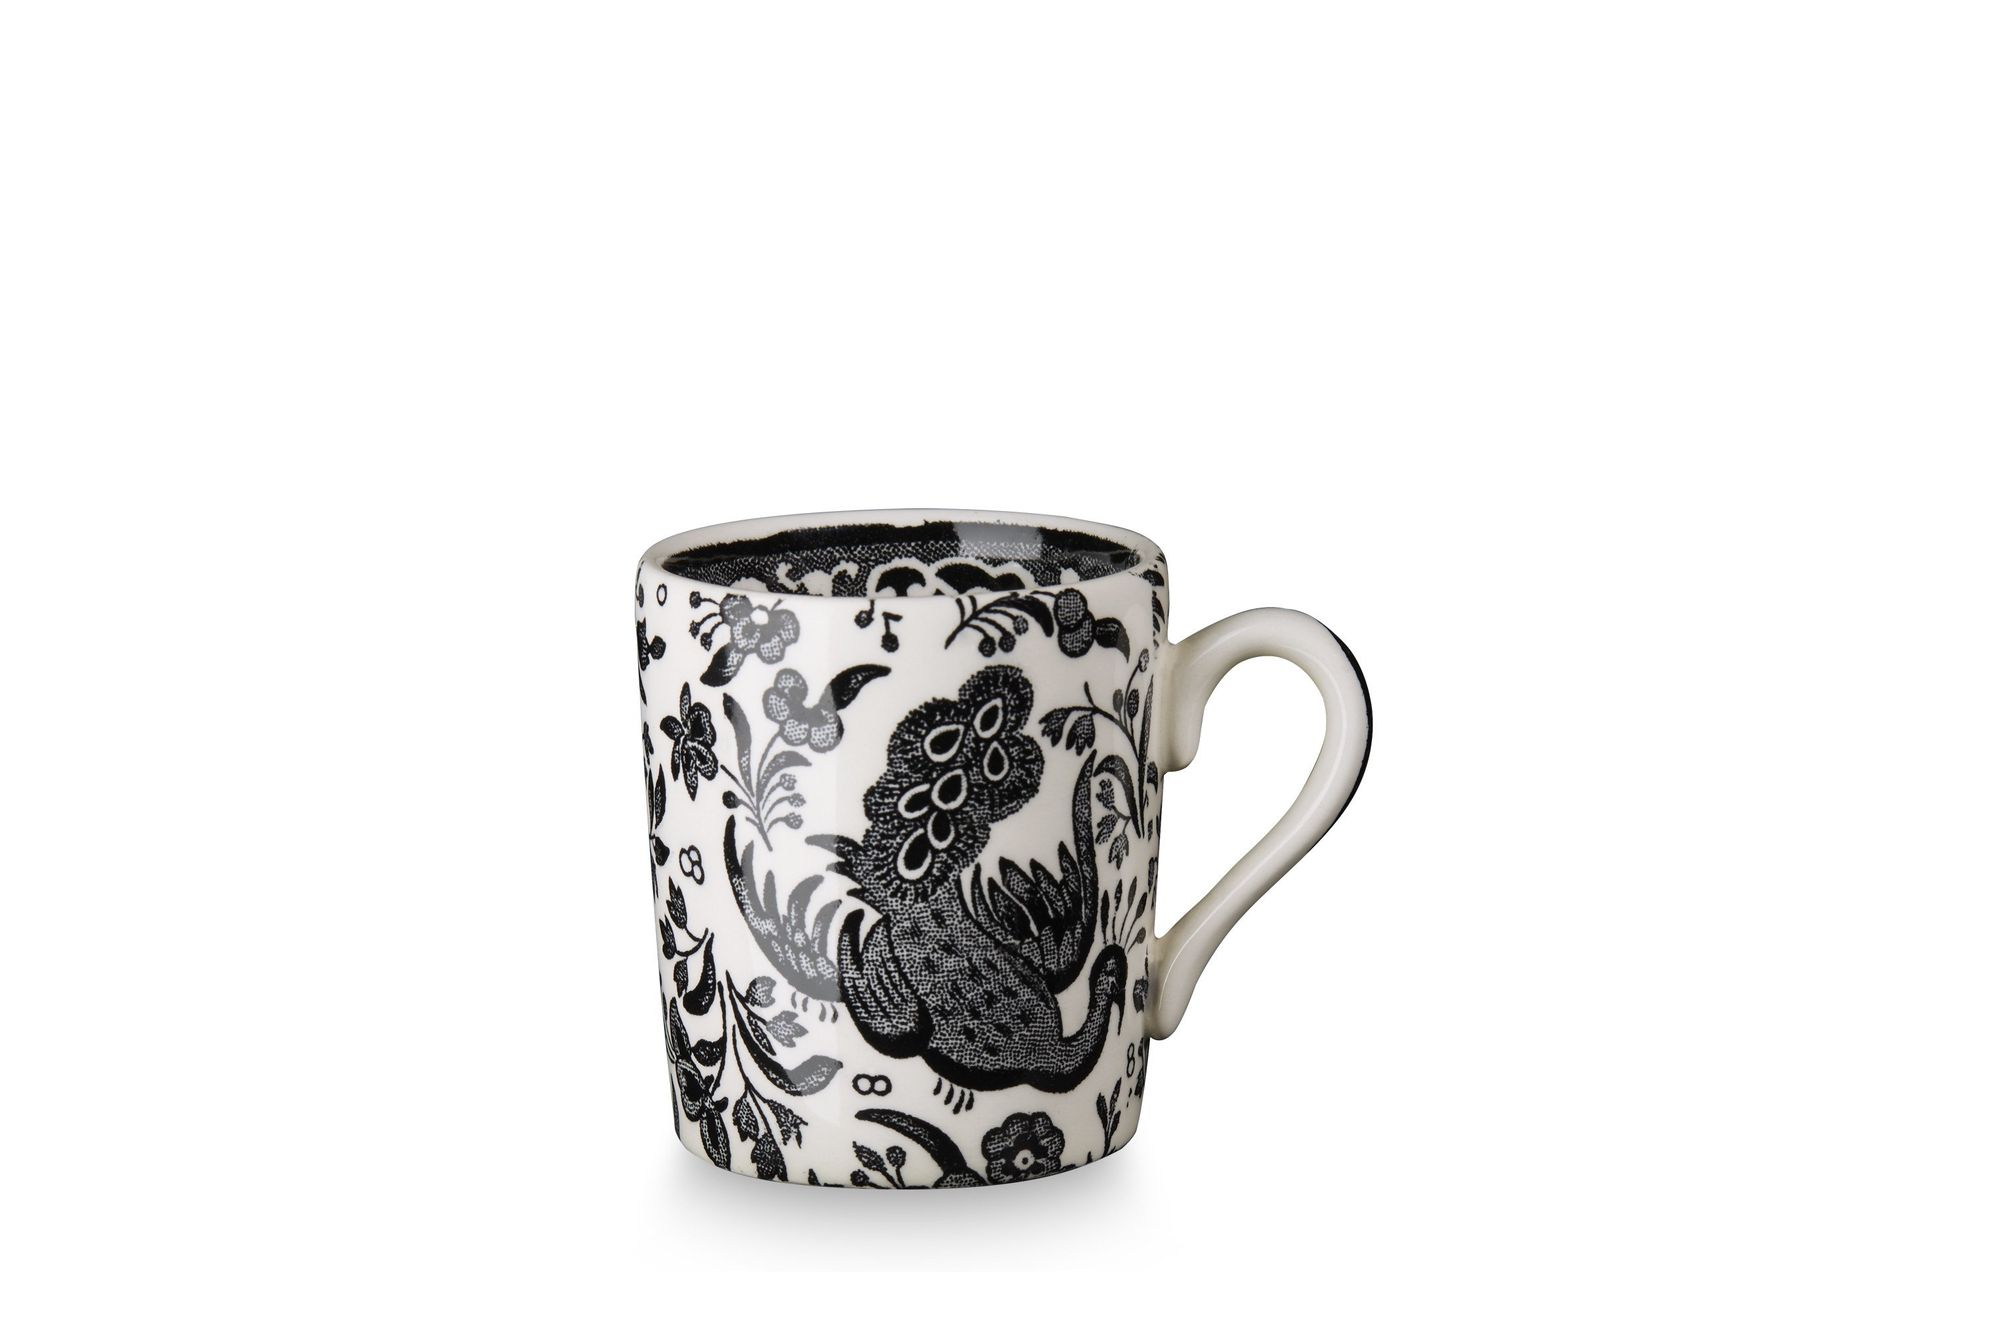 Burleigh Black Regal Peacock Espresso Cup thumb 2